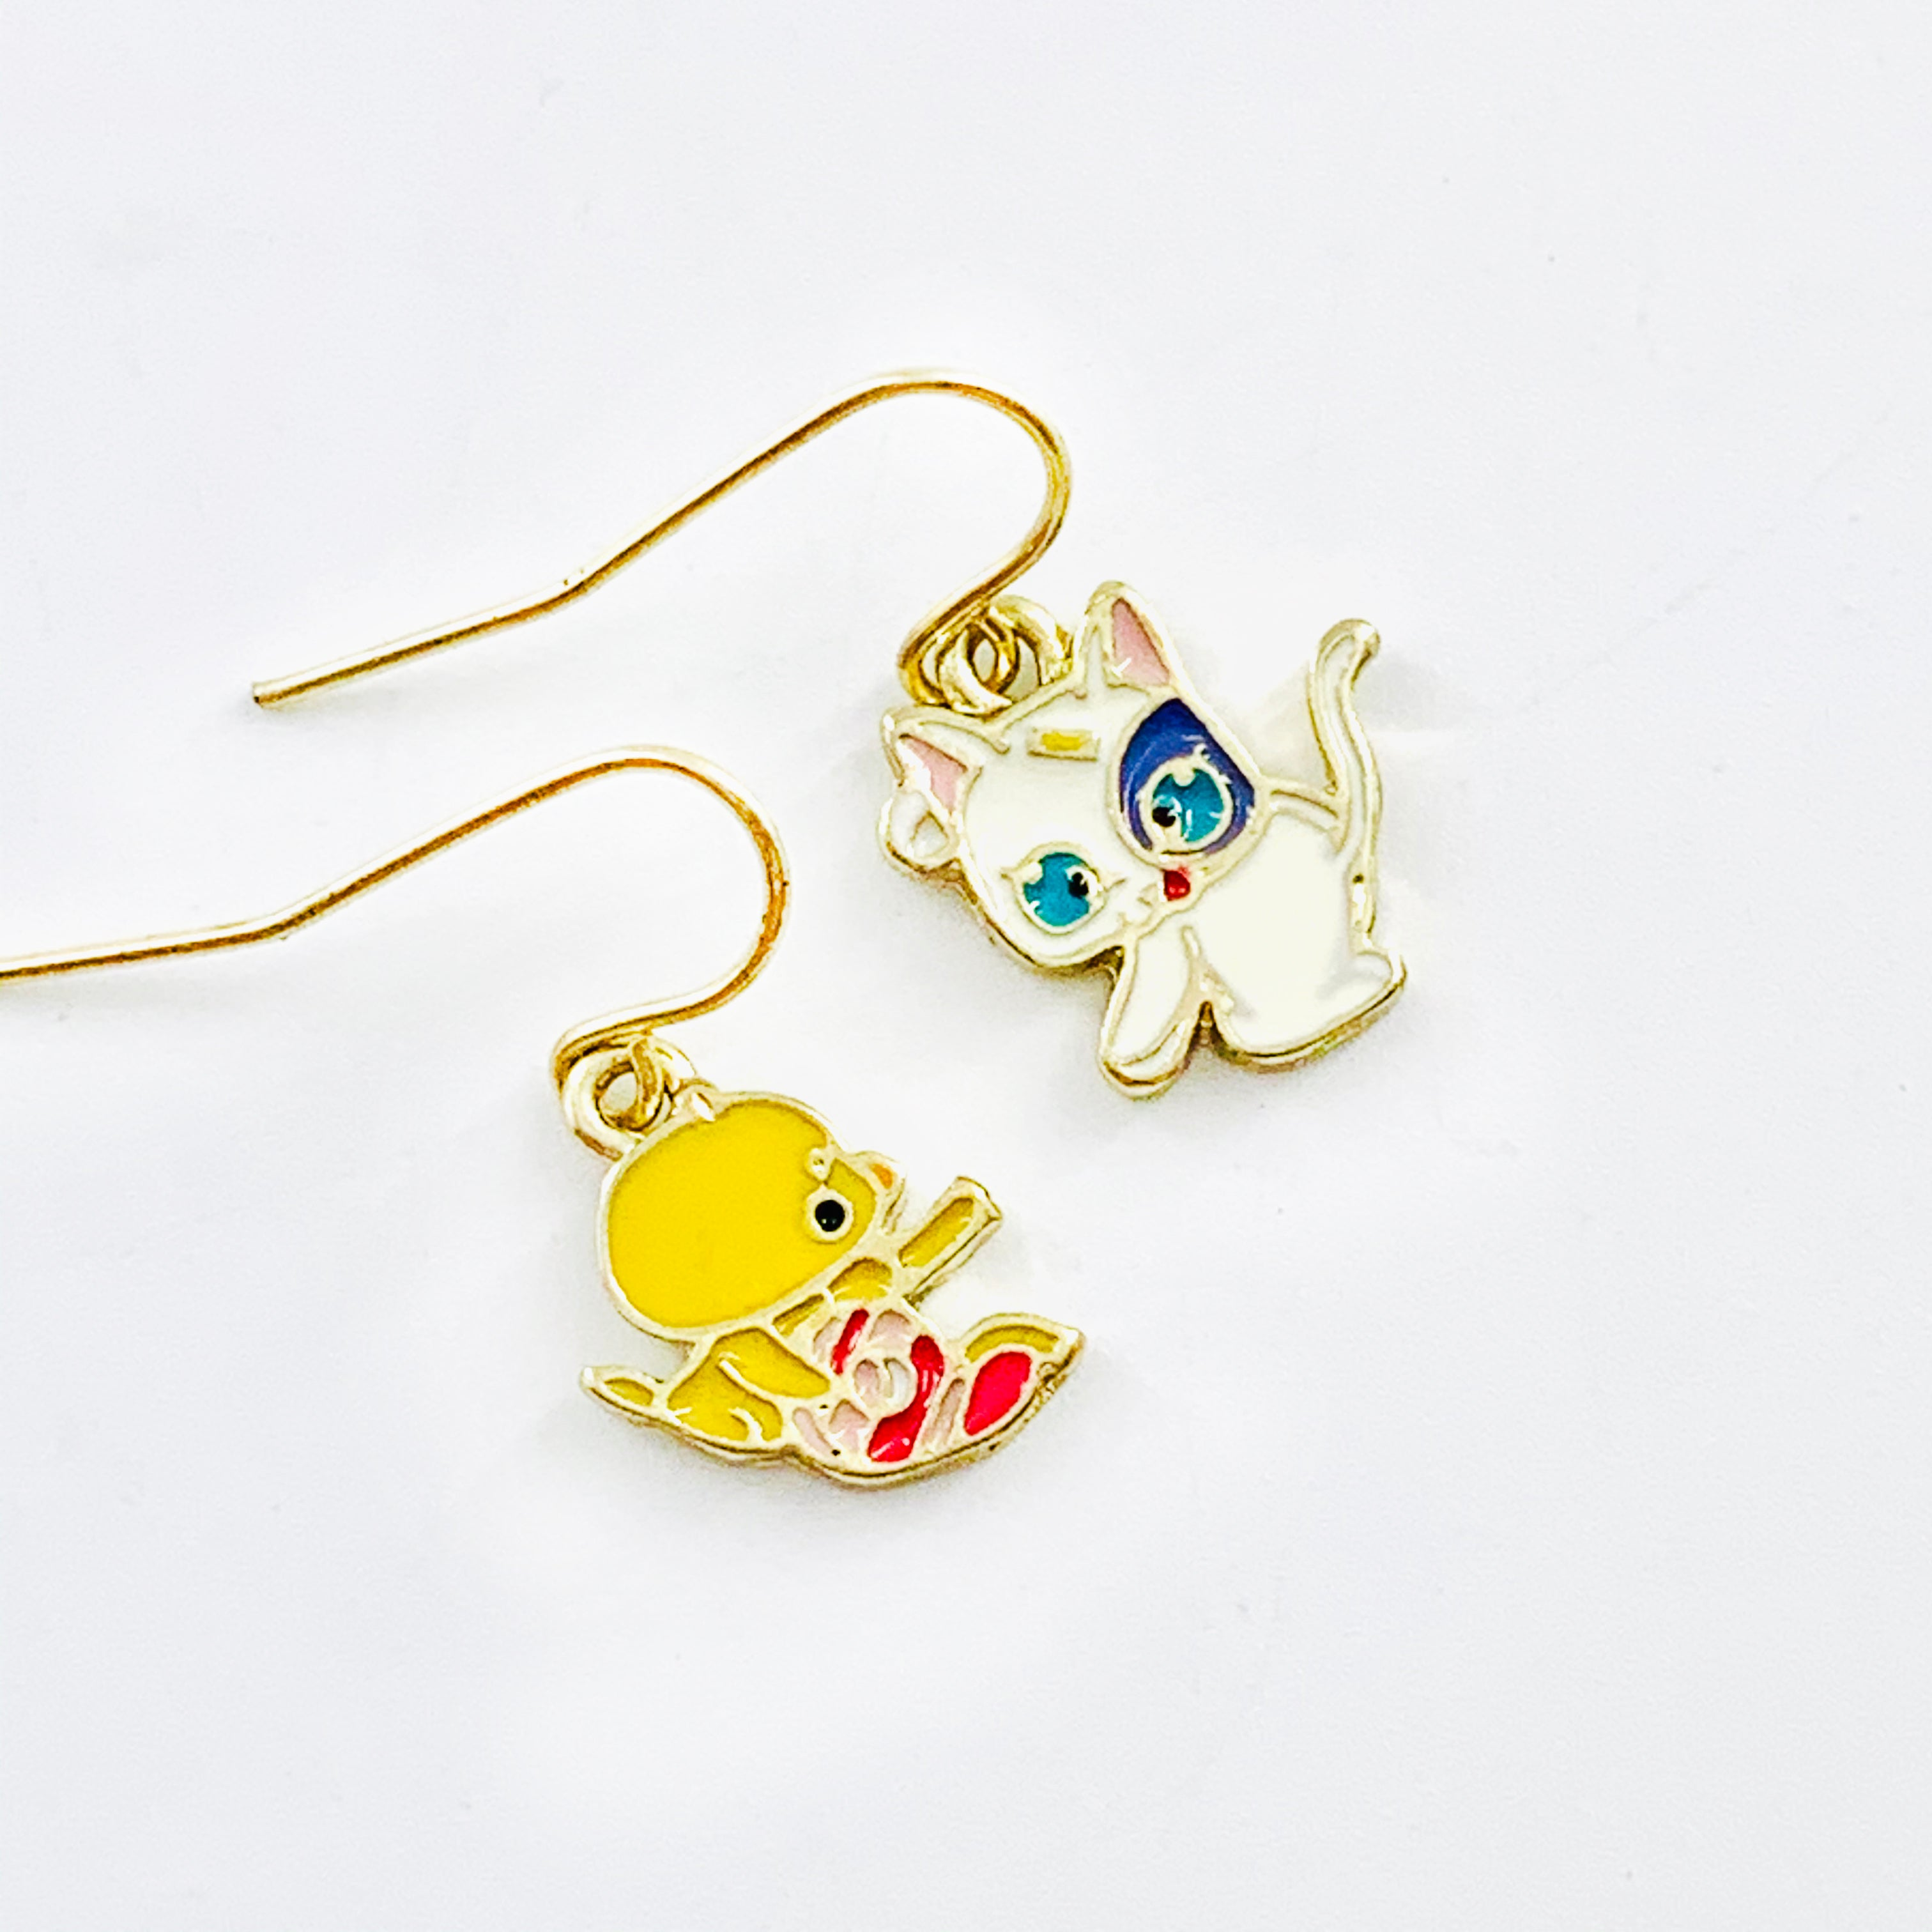 Cute chick and cat earrings